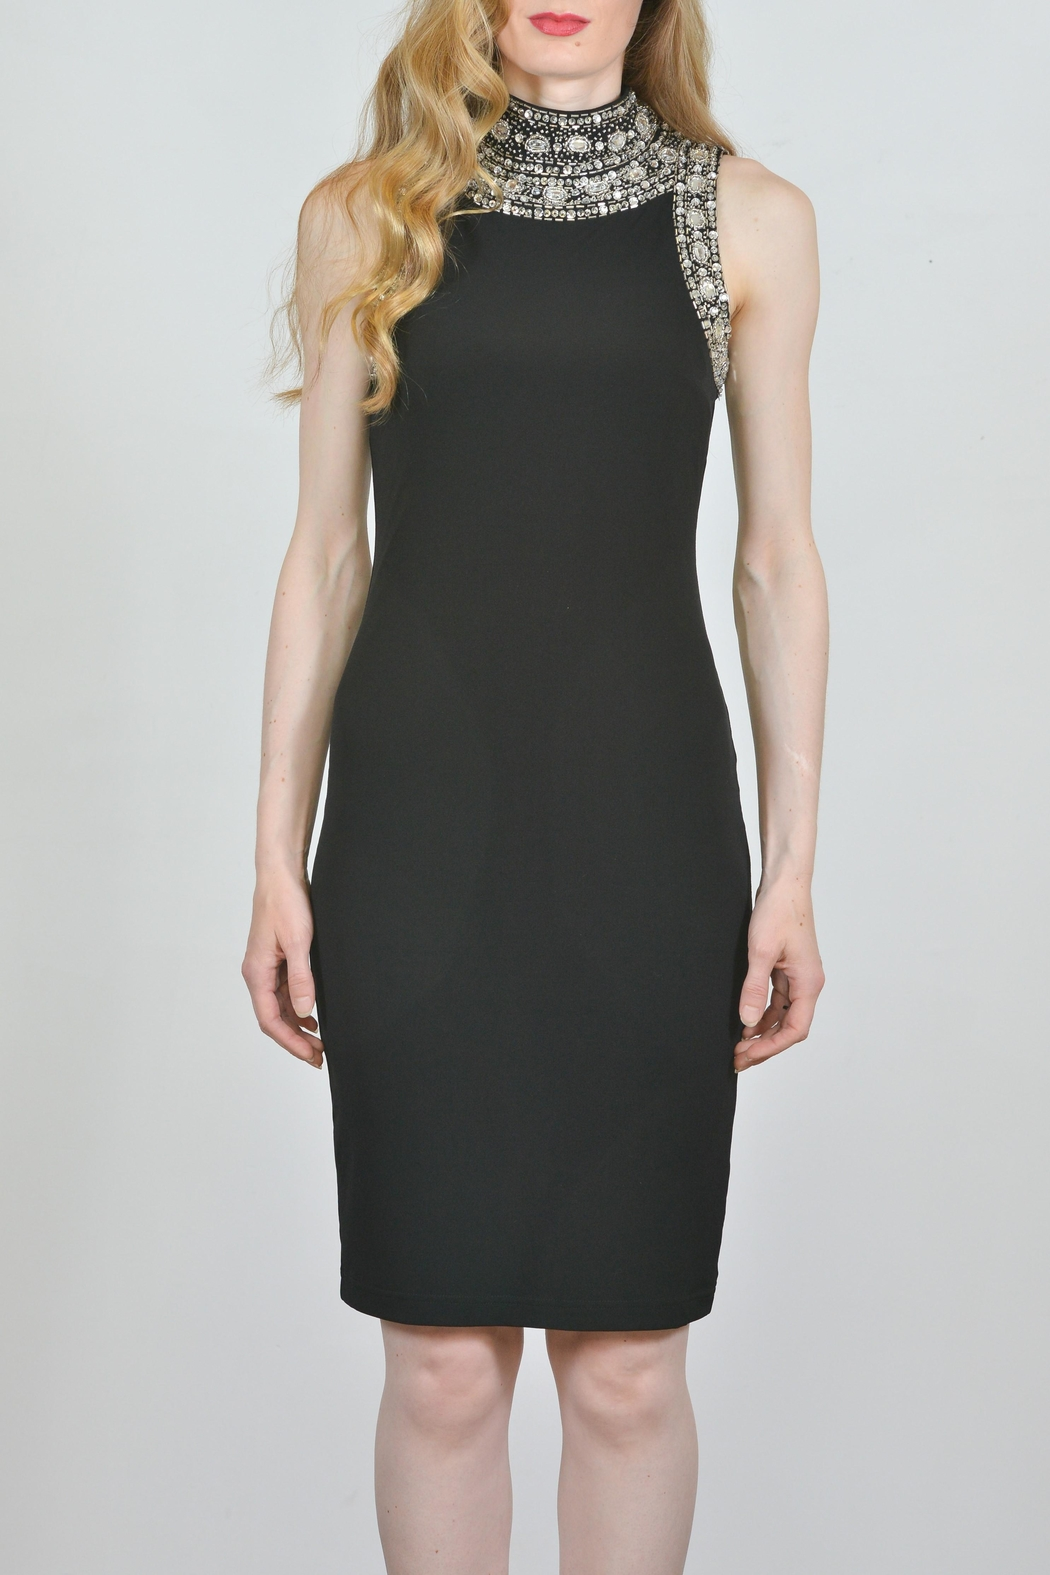 Joseph Ribkoff Crystal Accented Dress - Front Cropped Image